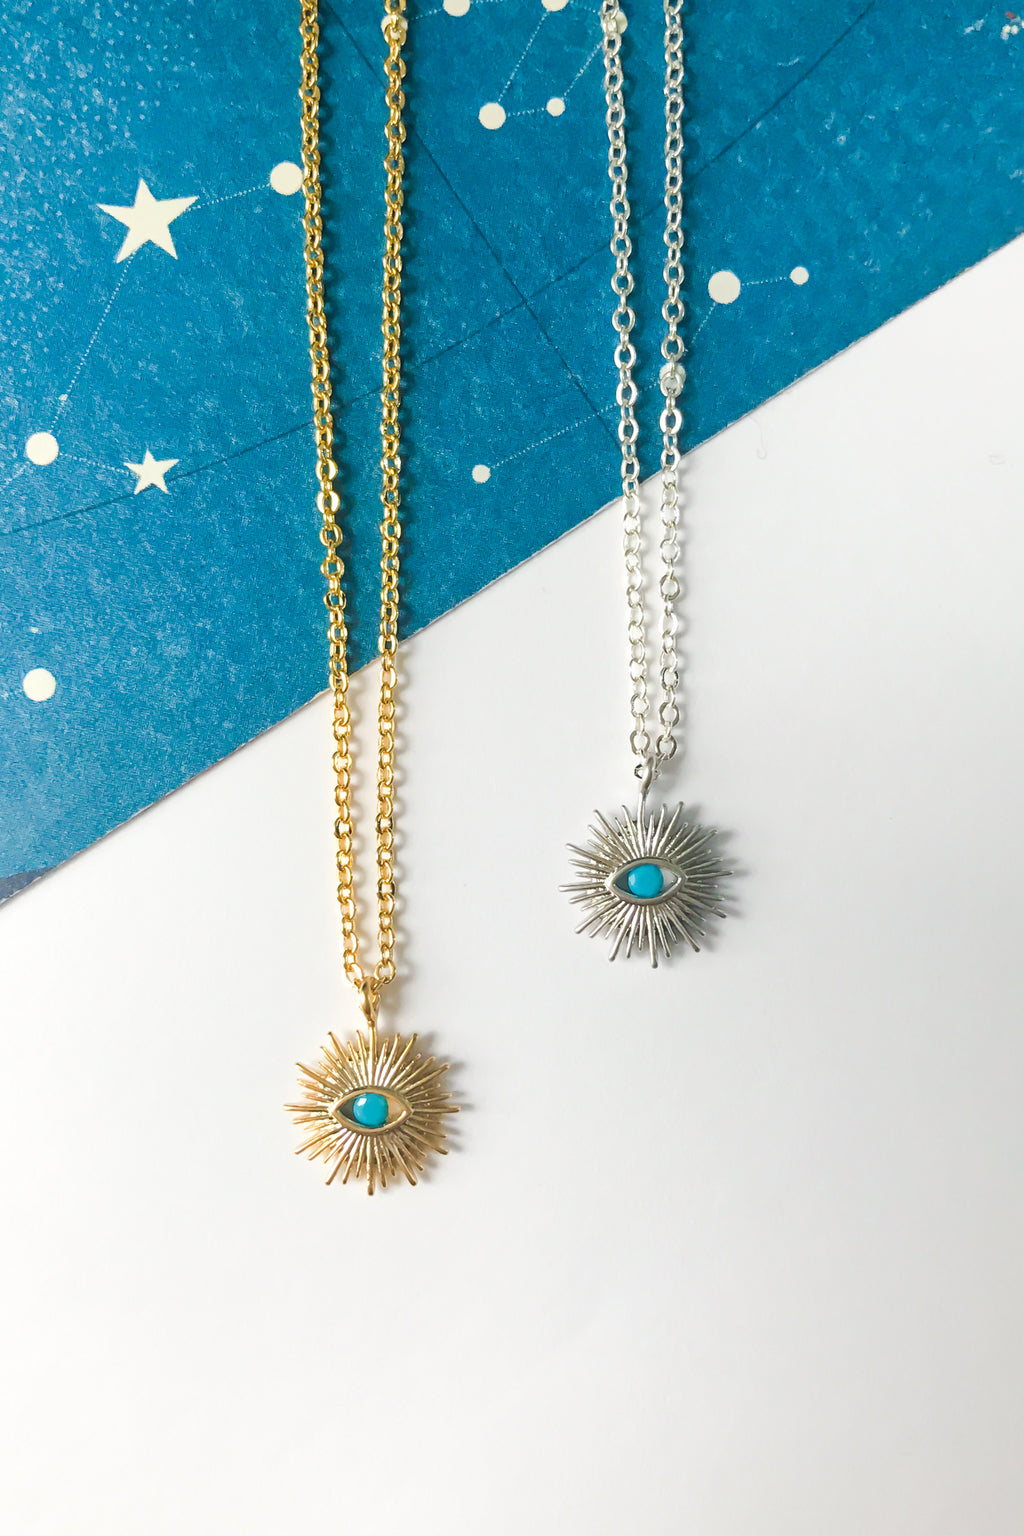 Sunburst evil eye necklace